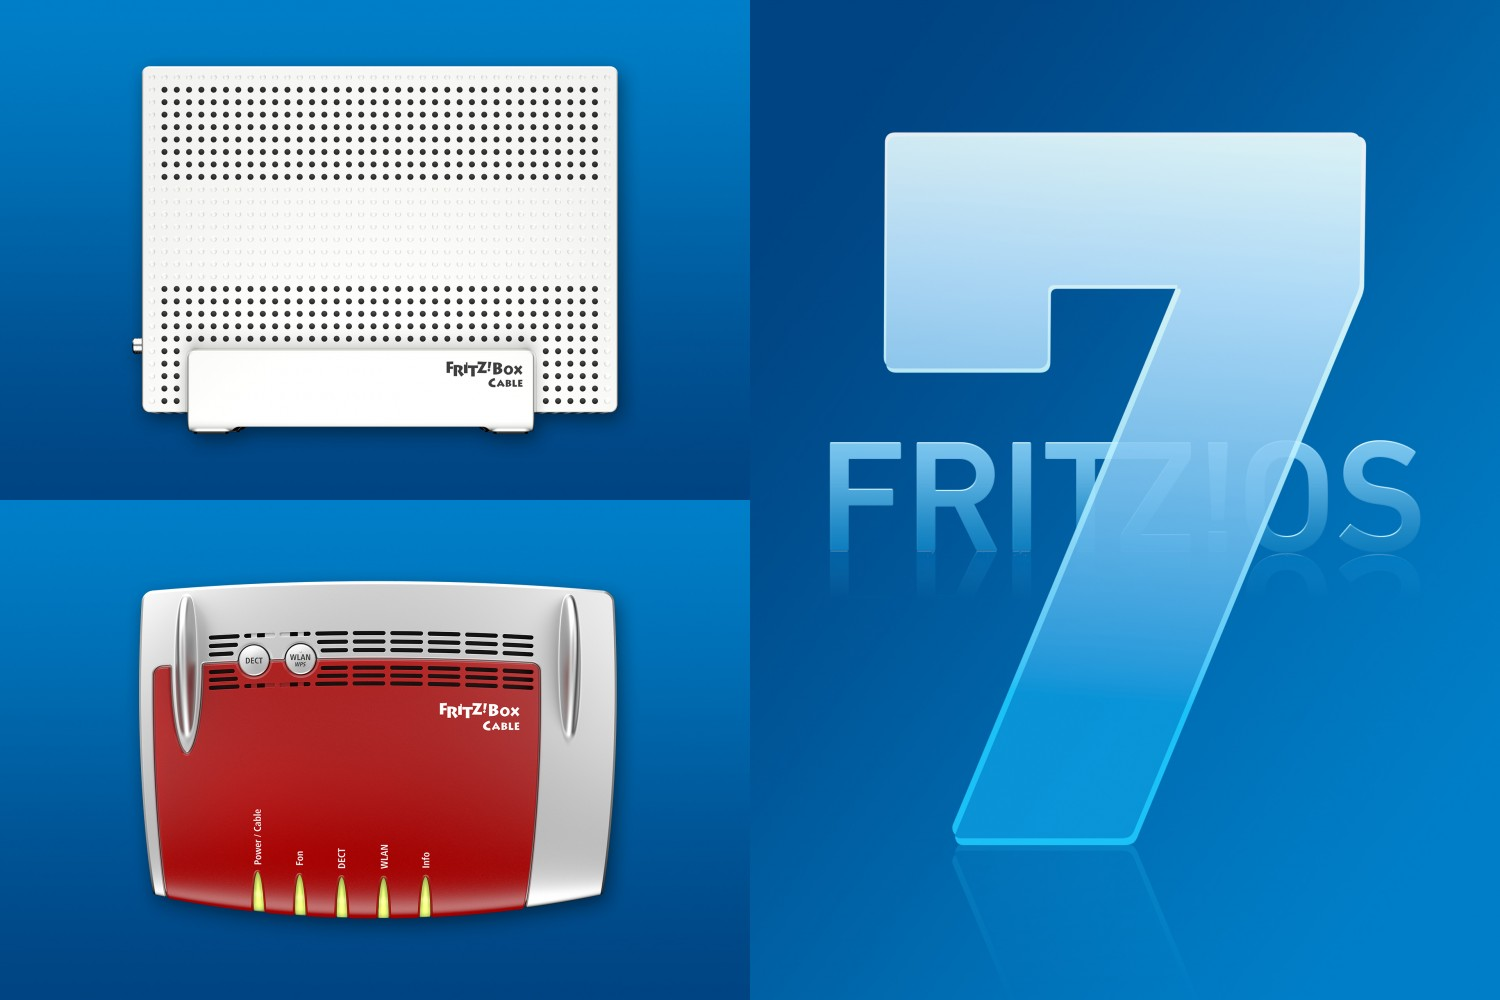 Fritz Os 7 Jetzt Auch Fur Die Fritz Box 6490 Cable Tv Signal Uber